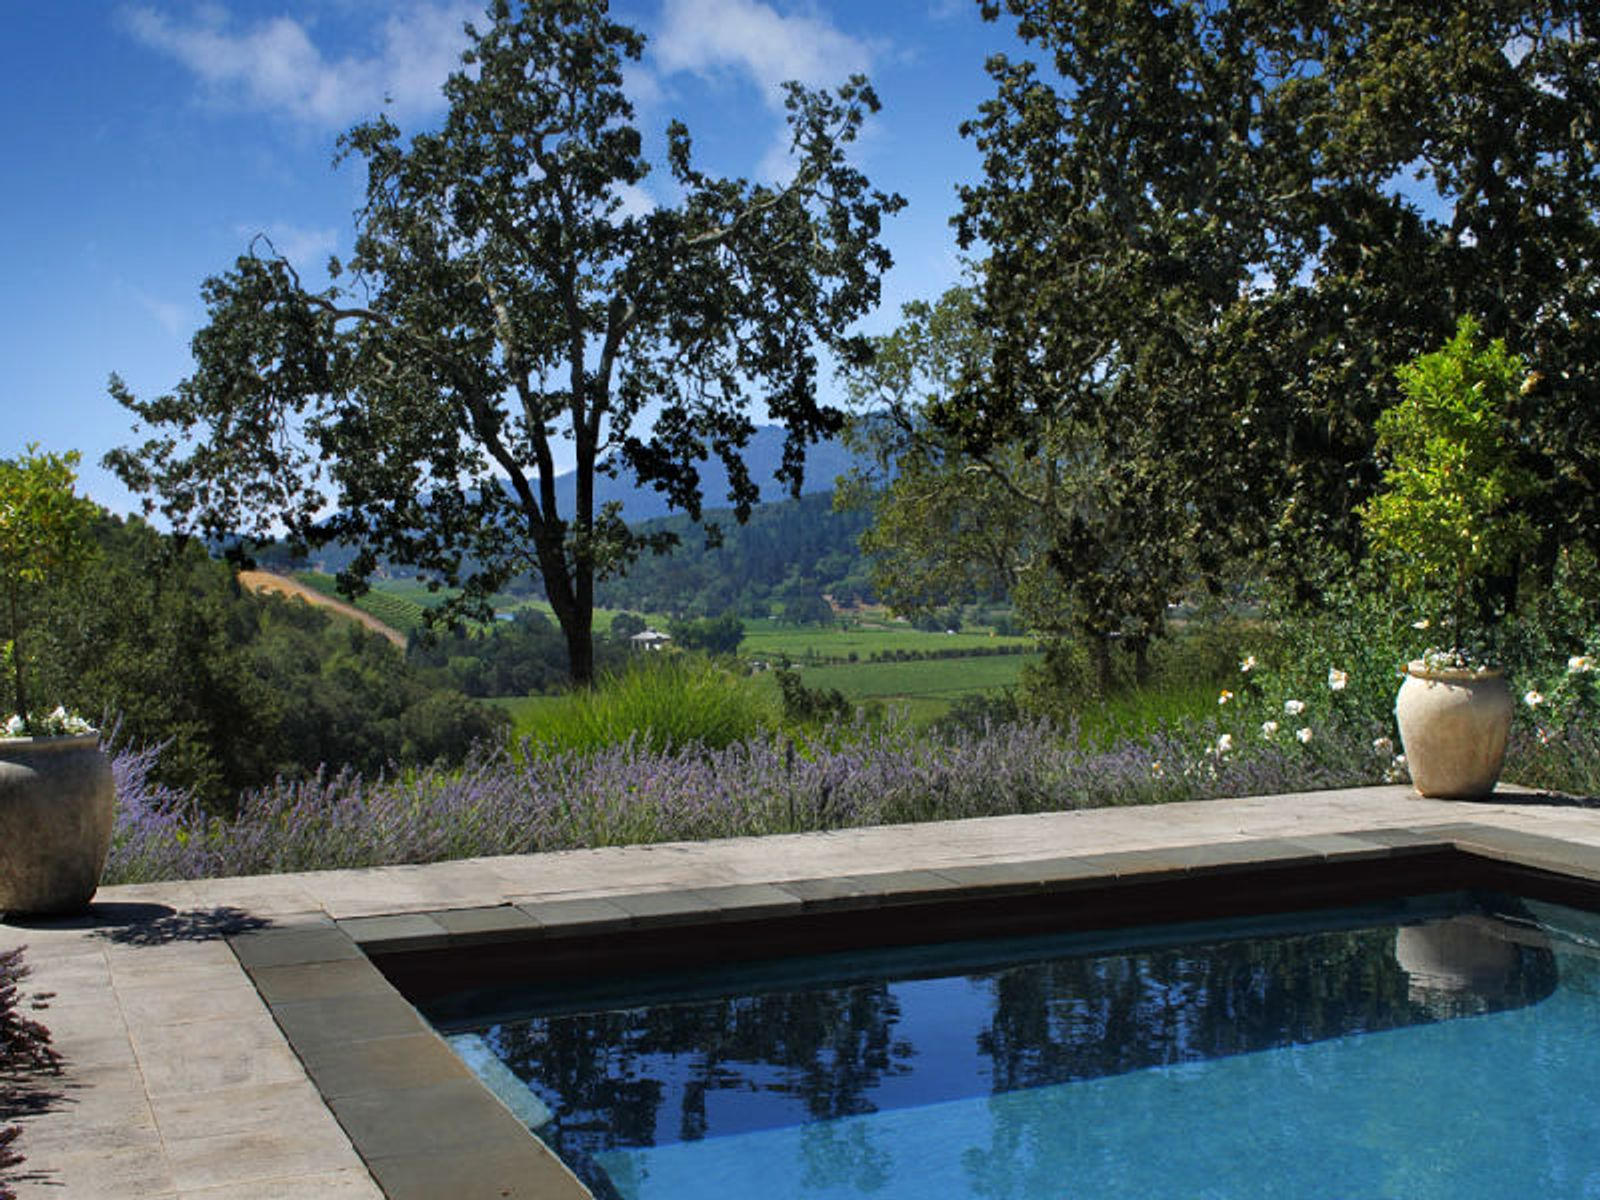 Winery Terrace Estate, Kenwood CA Single Family Home - Sonoma - Napa Real Estate